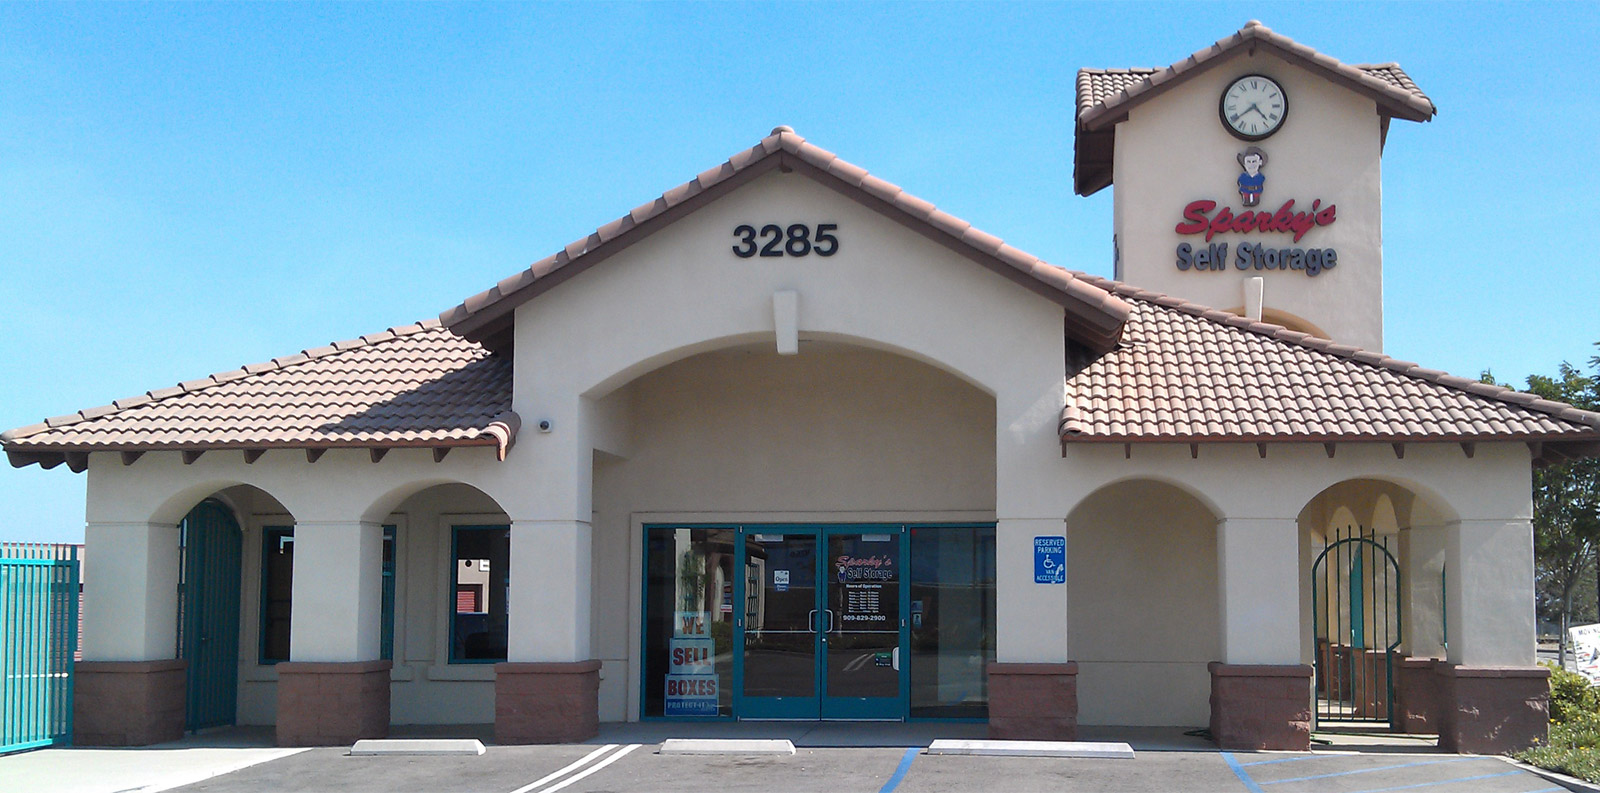 Sparky self storage facility in California